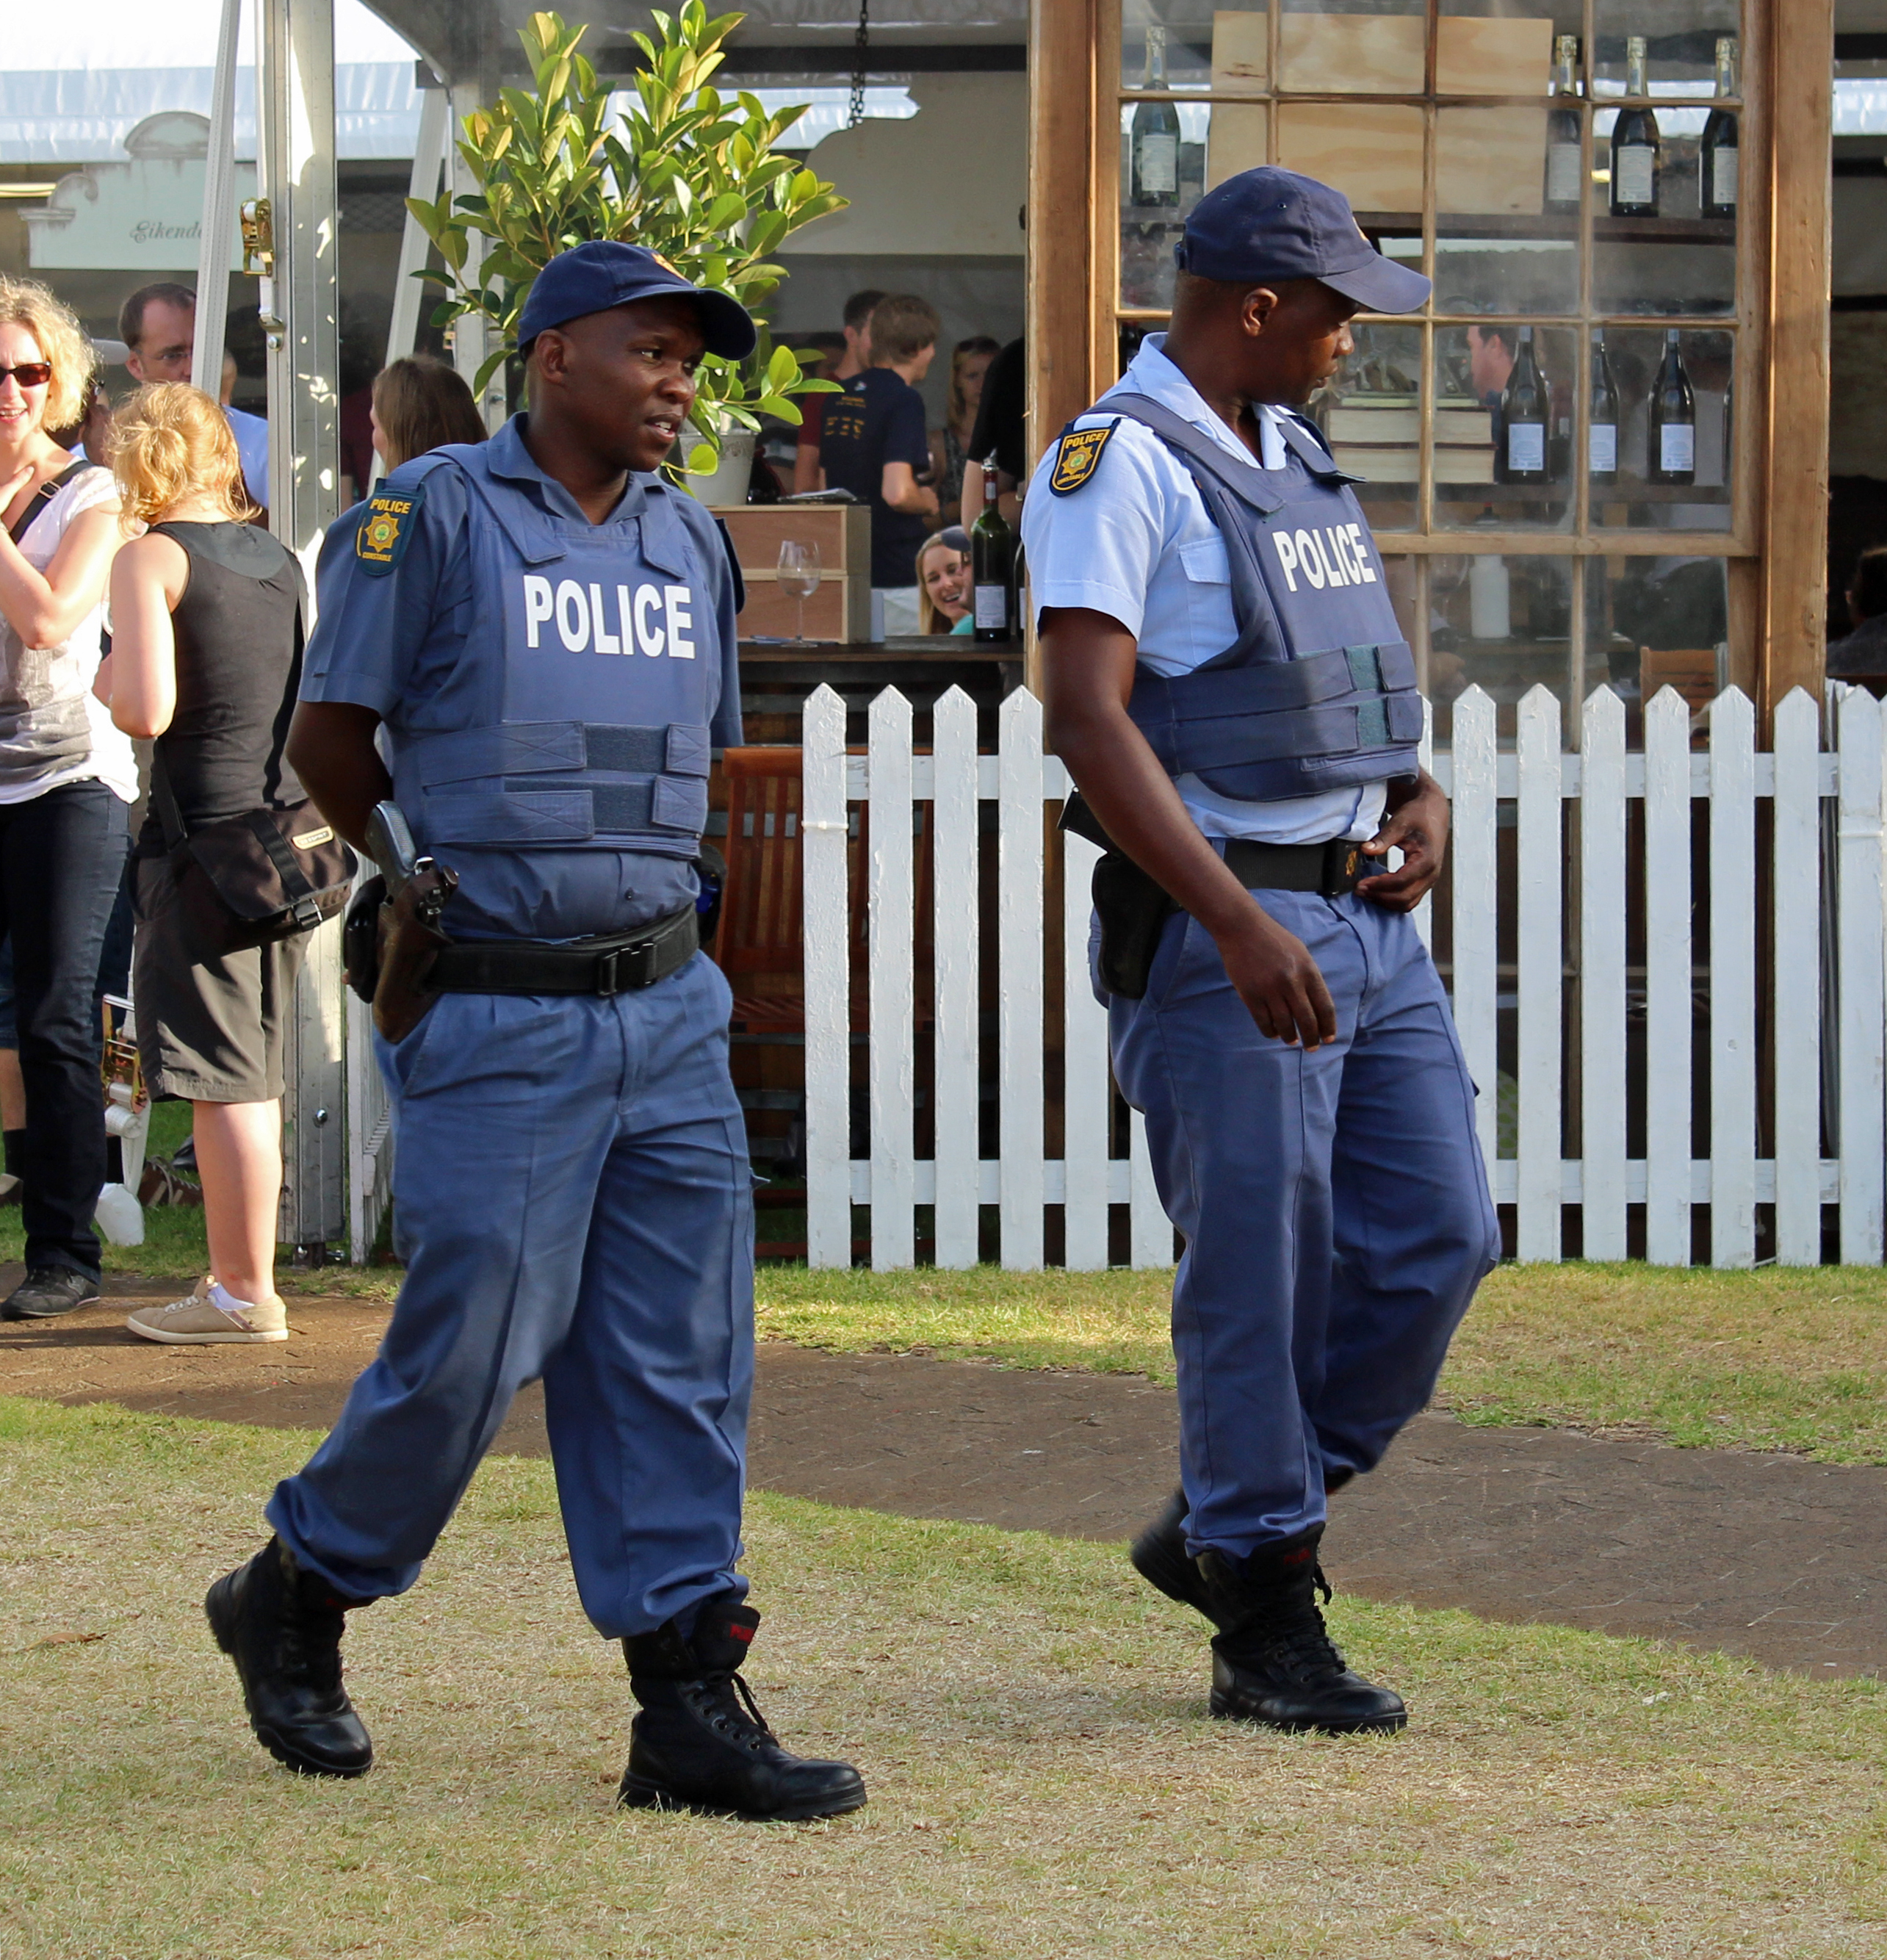 Image Result For Policeman In